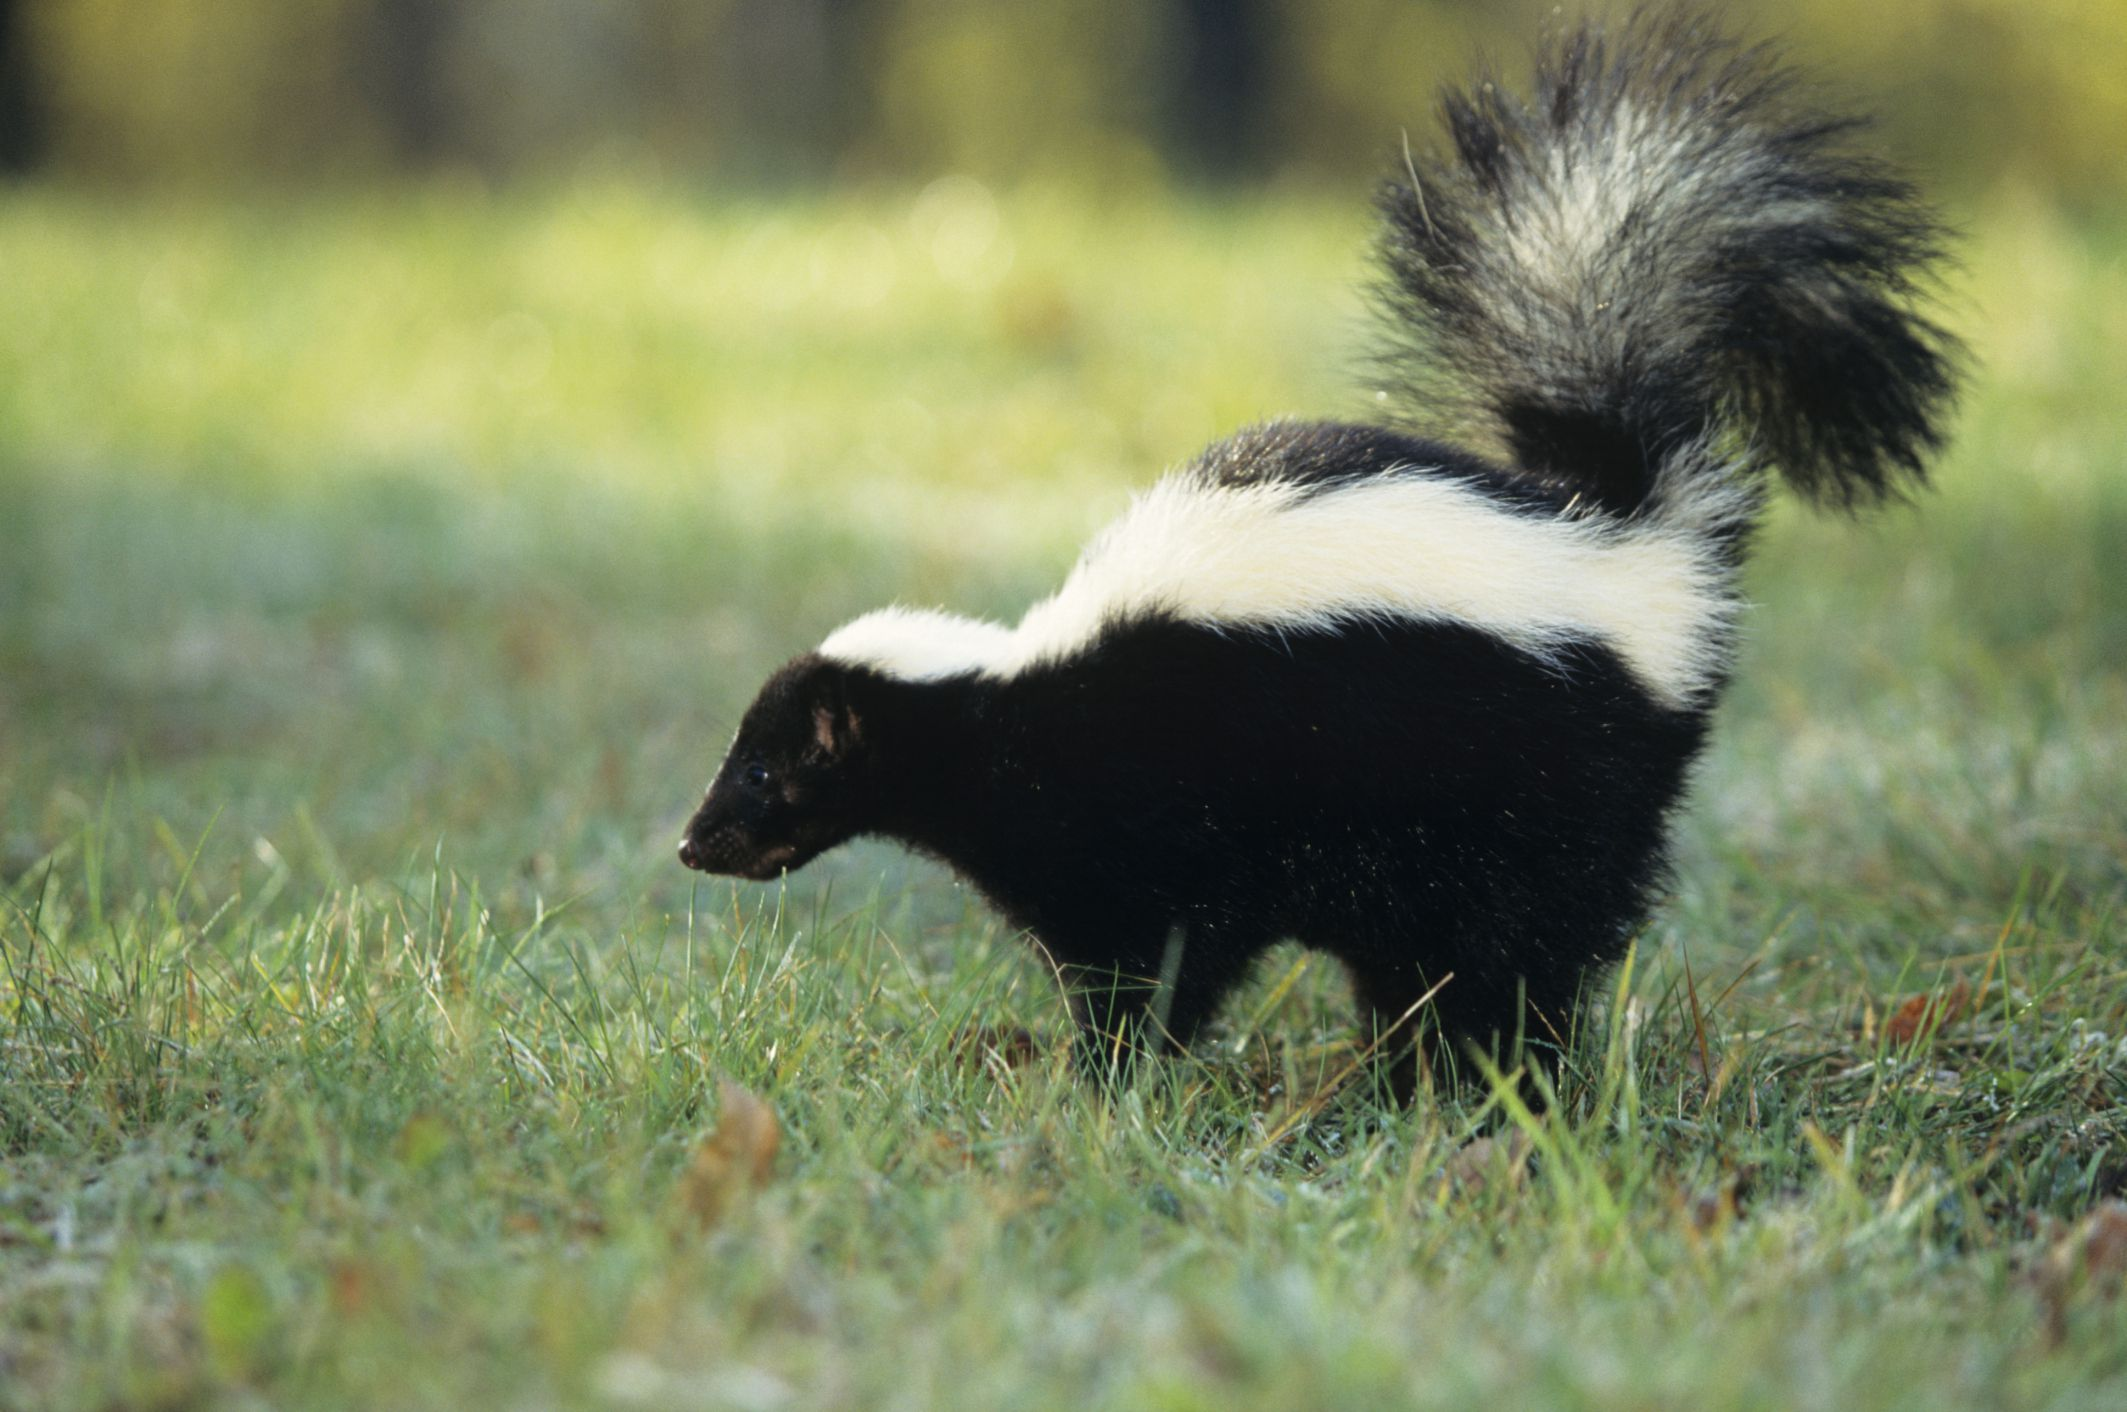 How To Get Skunk Off Your Dog